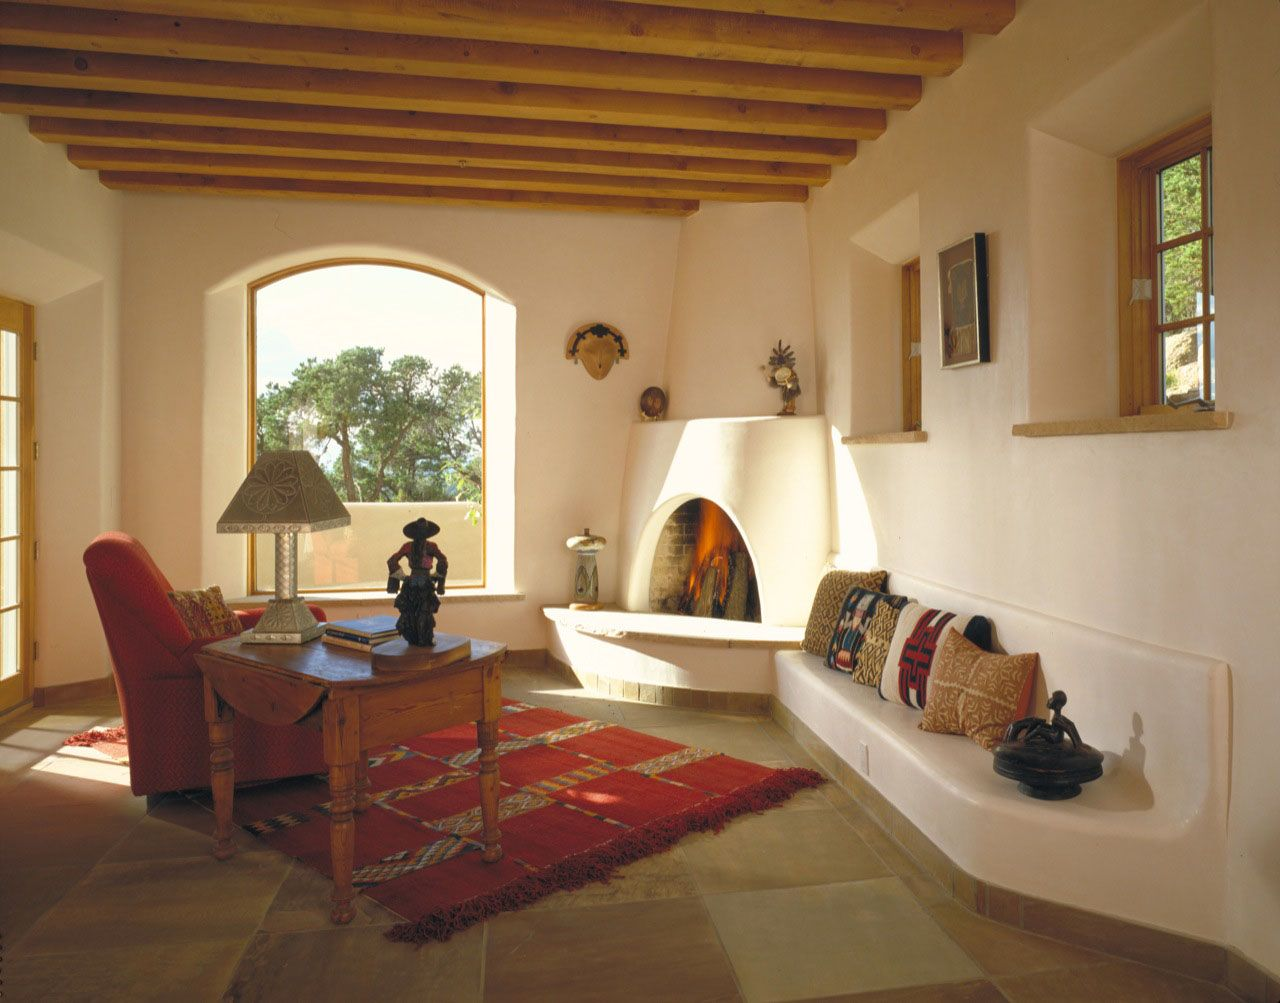 Adobe Home Design Ideas About Adobe Homes On Pinterest Adobe House Santa Fe